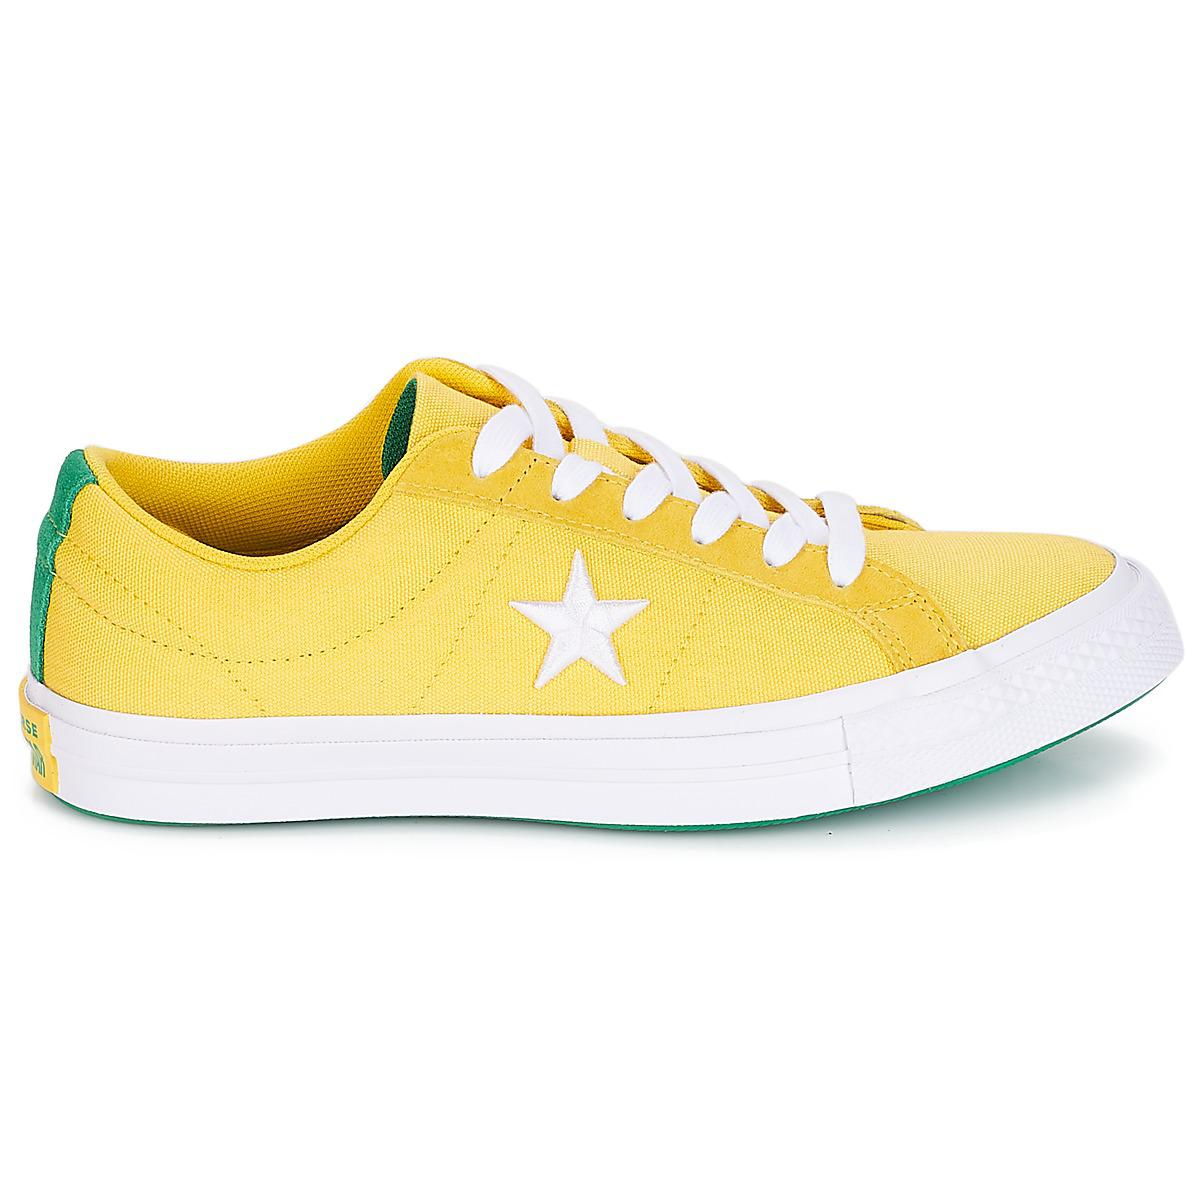 d5c1a46a876 Converse - One Star Women s Shoes (trainers) In Yellow - Lyst. View  fullscreen